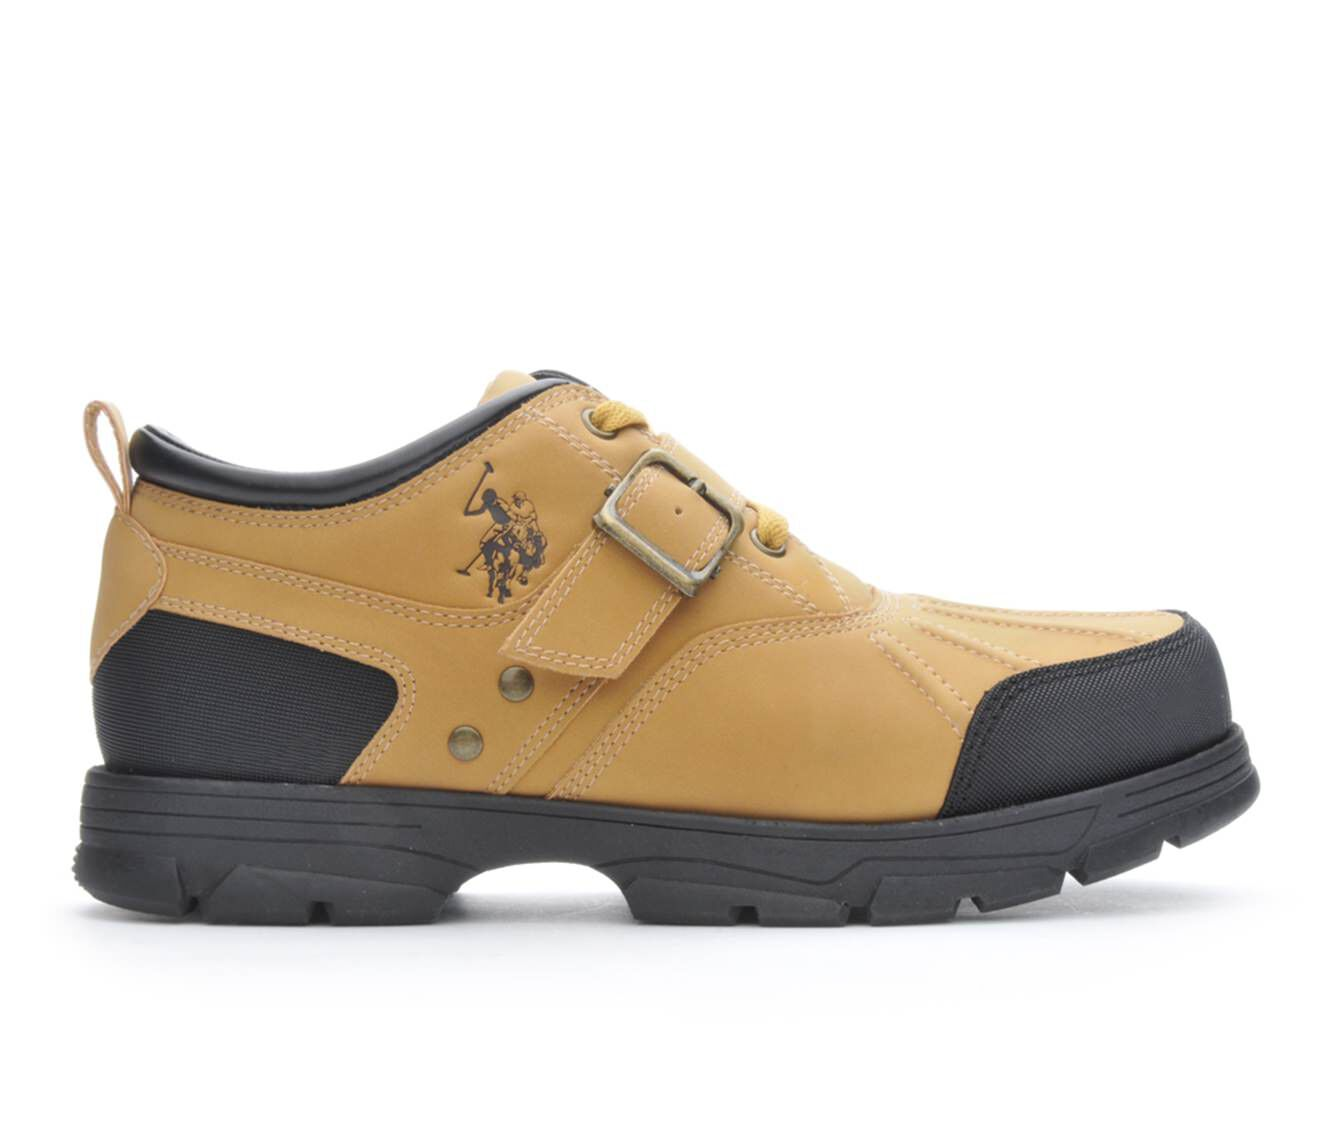 US Polo Assn Shoes  US Polo Assn Clancy II Mens Casual Shoes RedwoodBrown